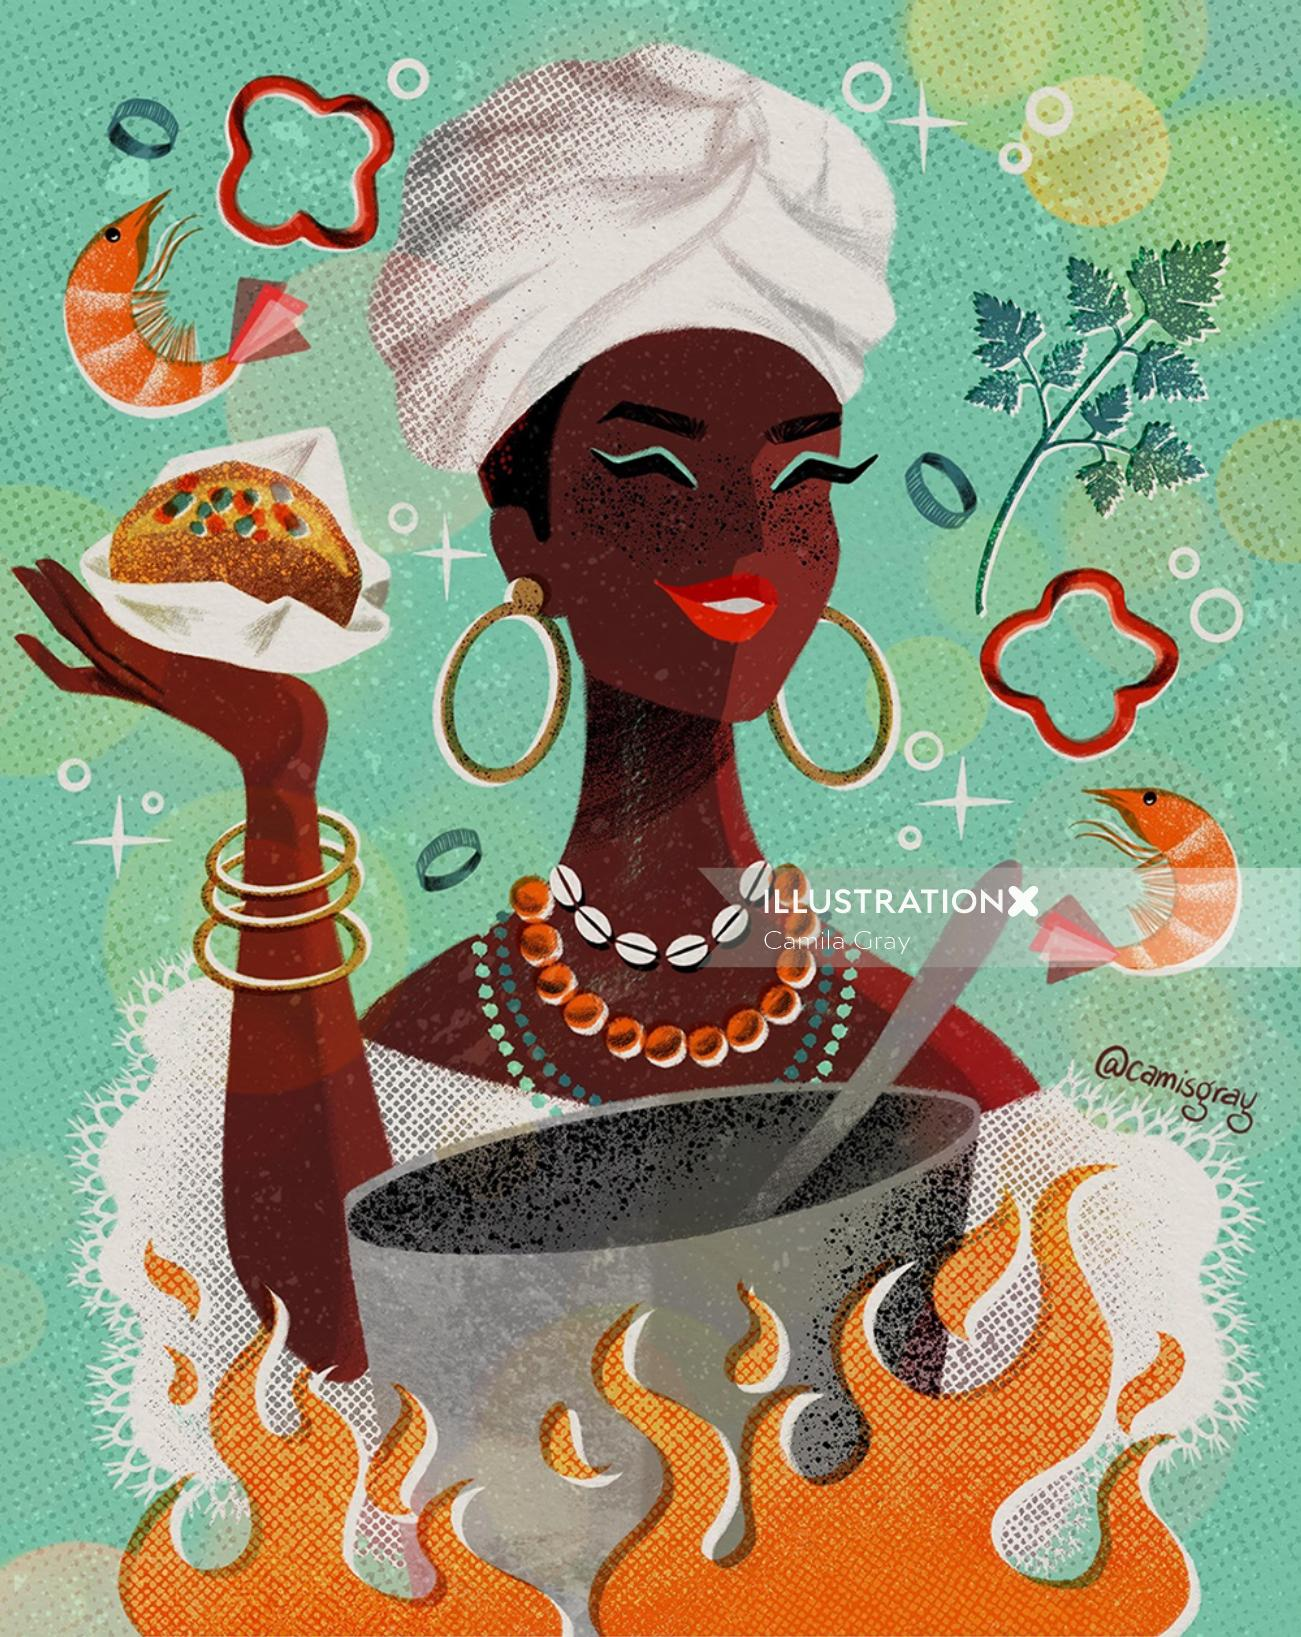 Chef cooking food illustration